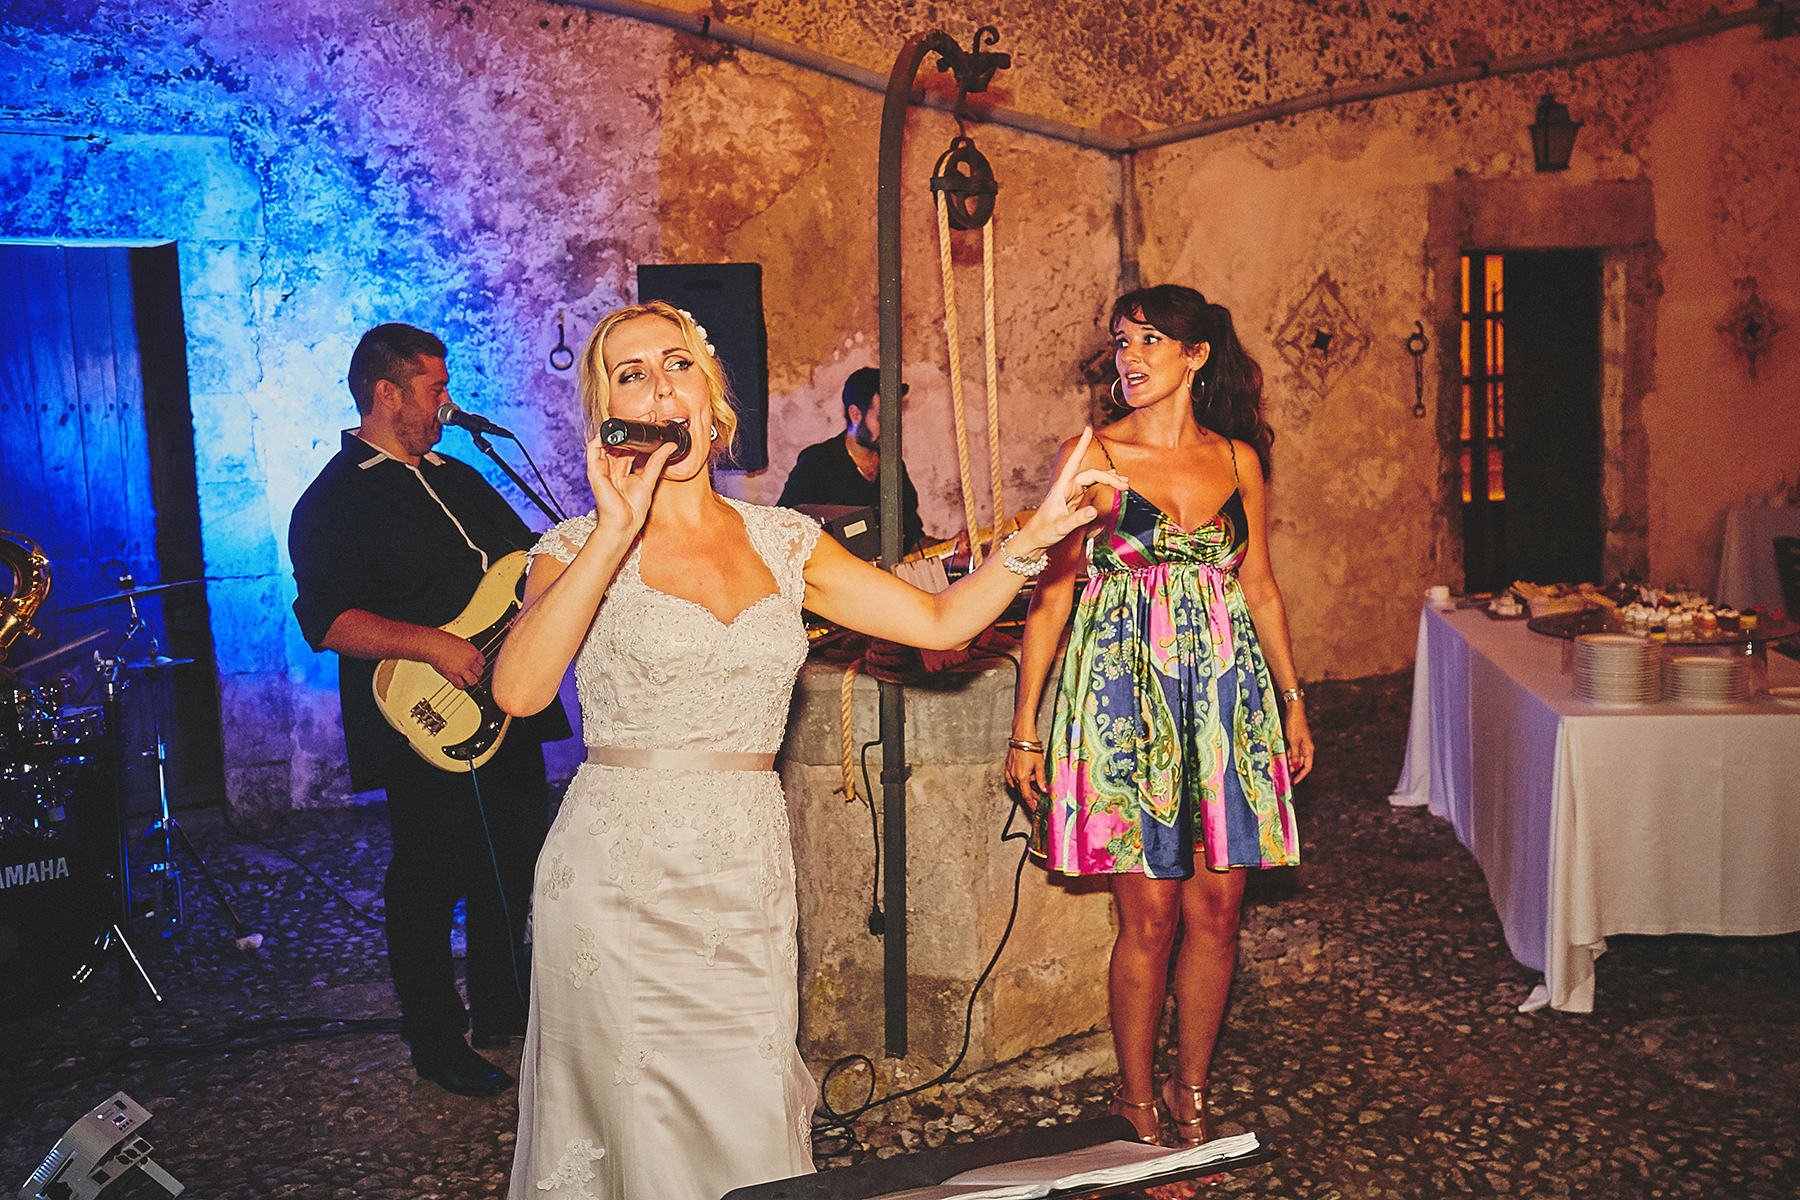 483 - Destination wedding in a magical Mallorca